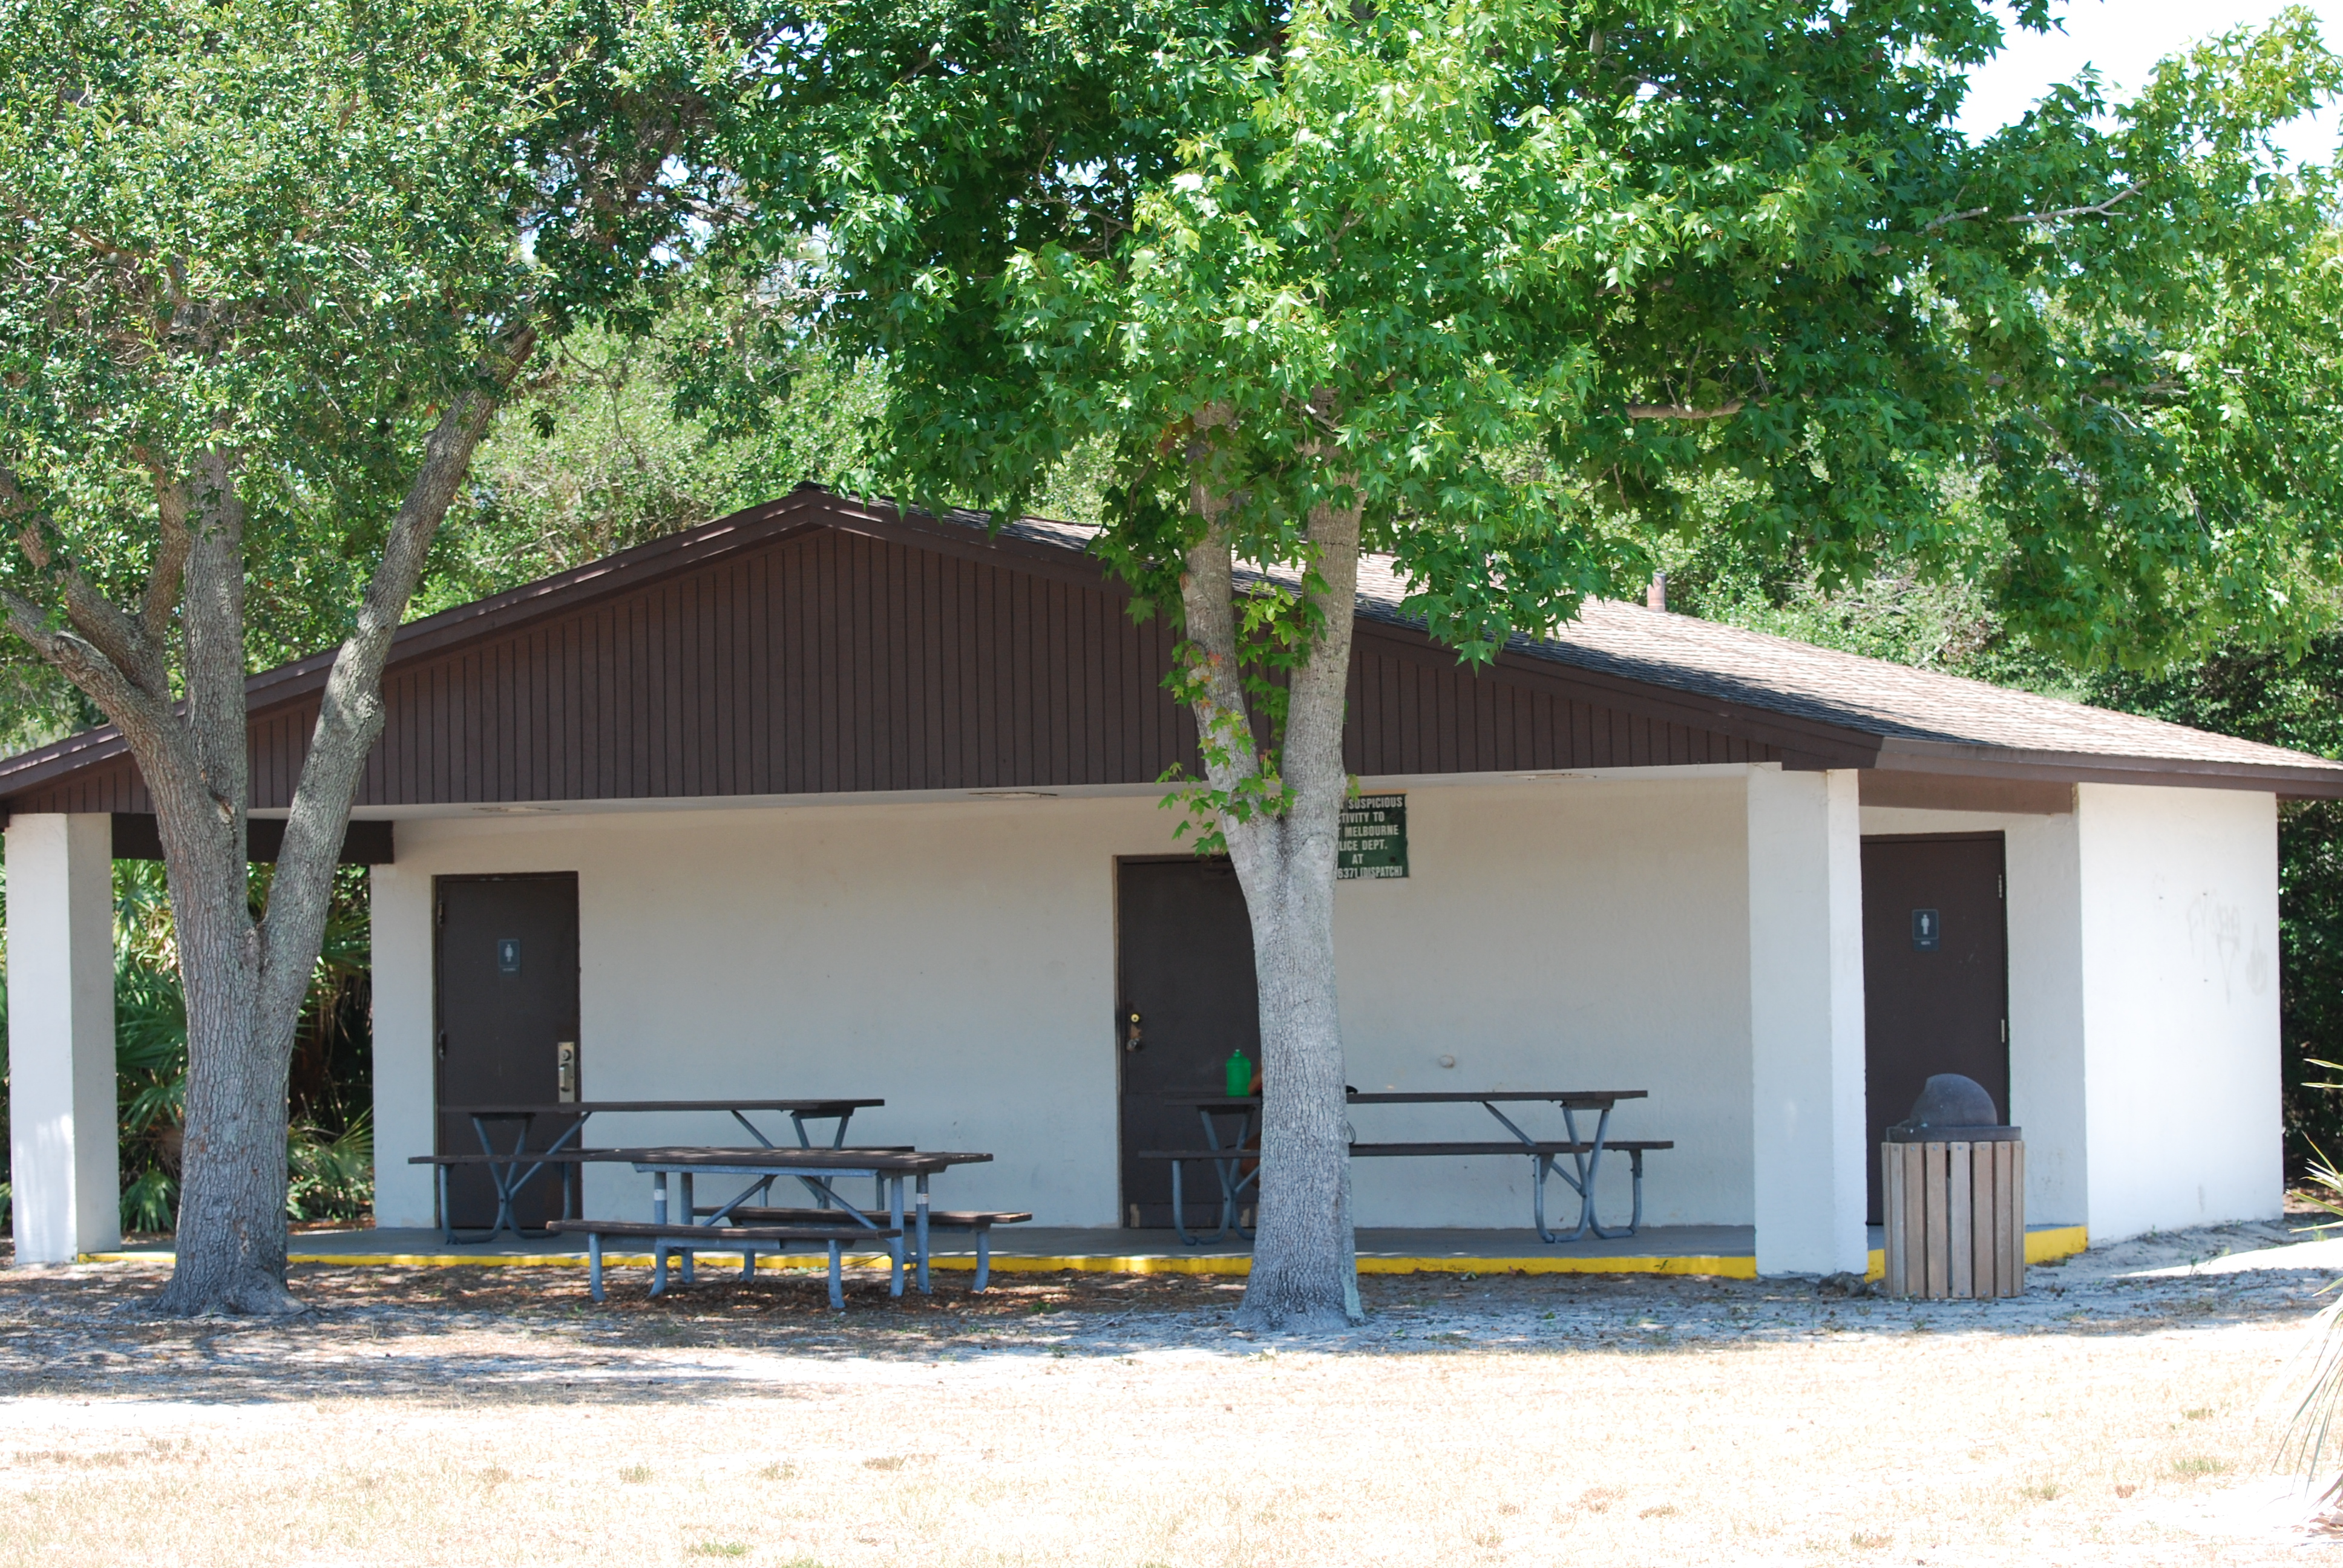 Picnic and Restroom Facilities